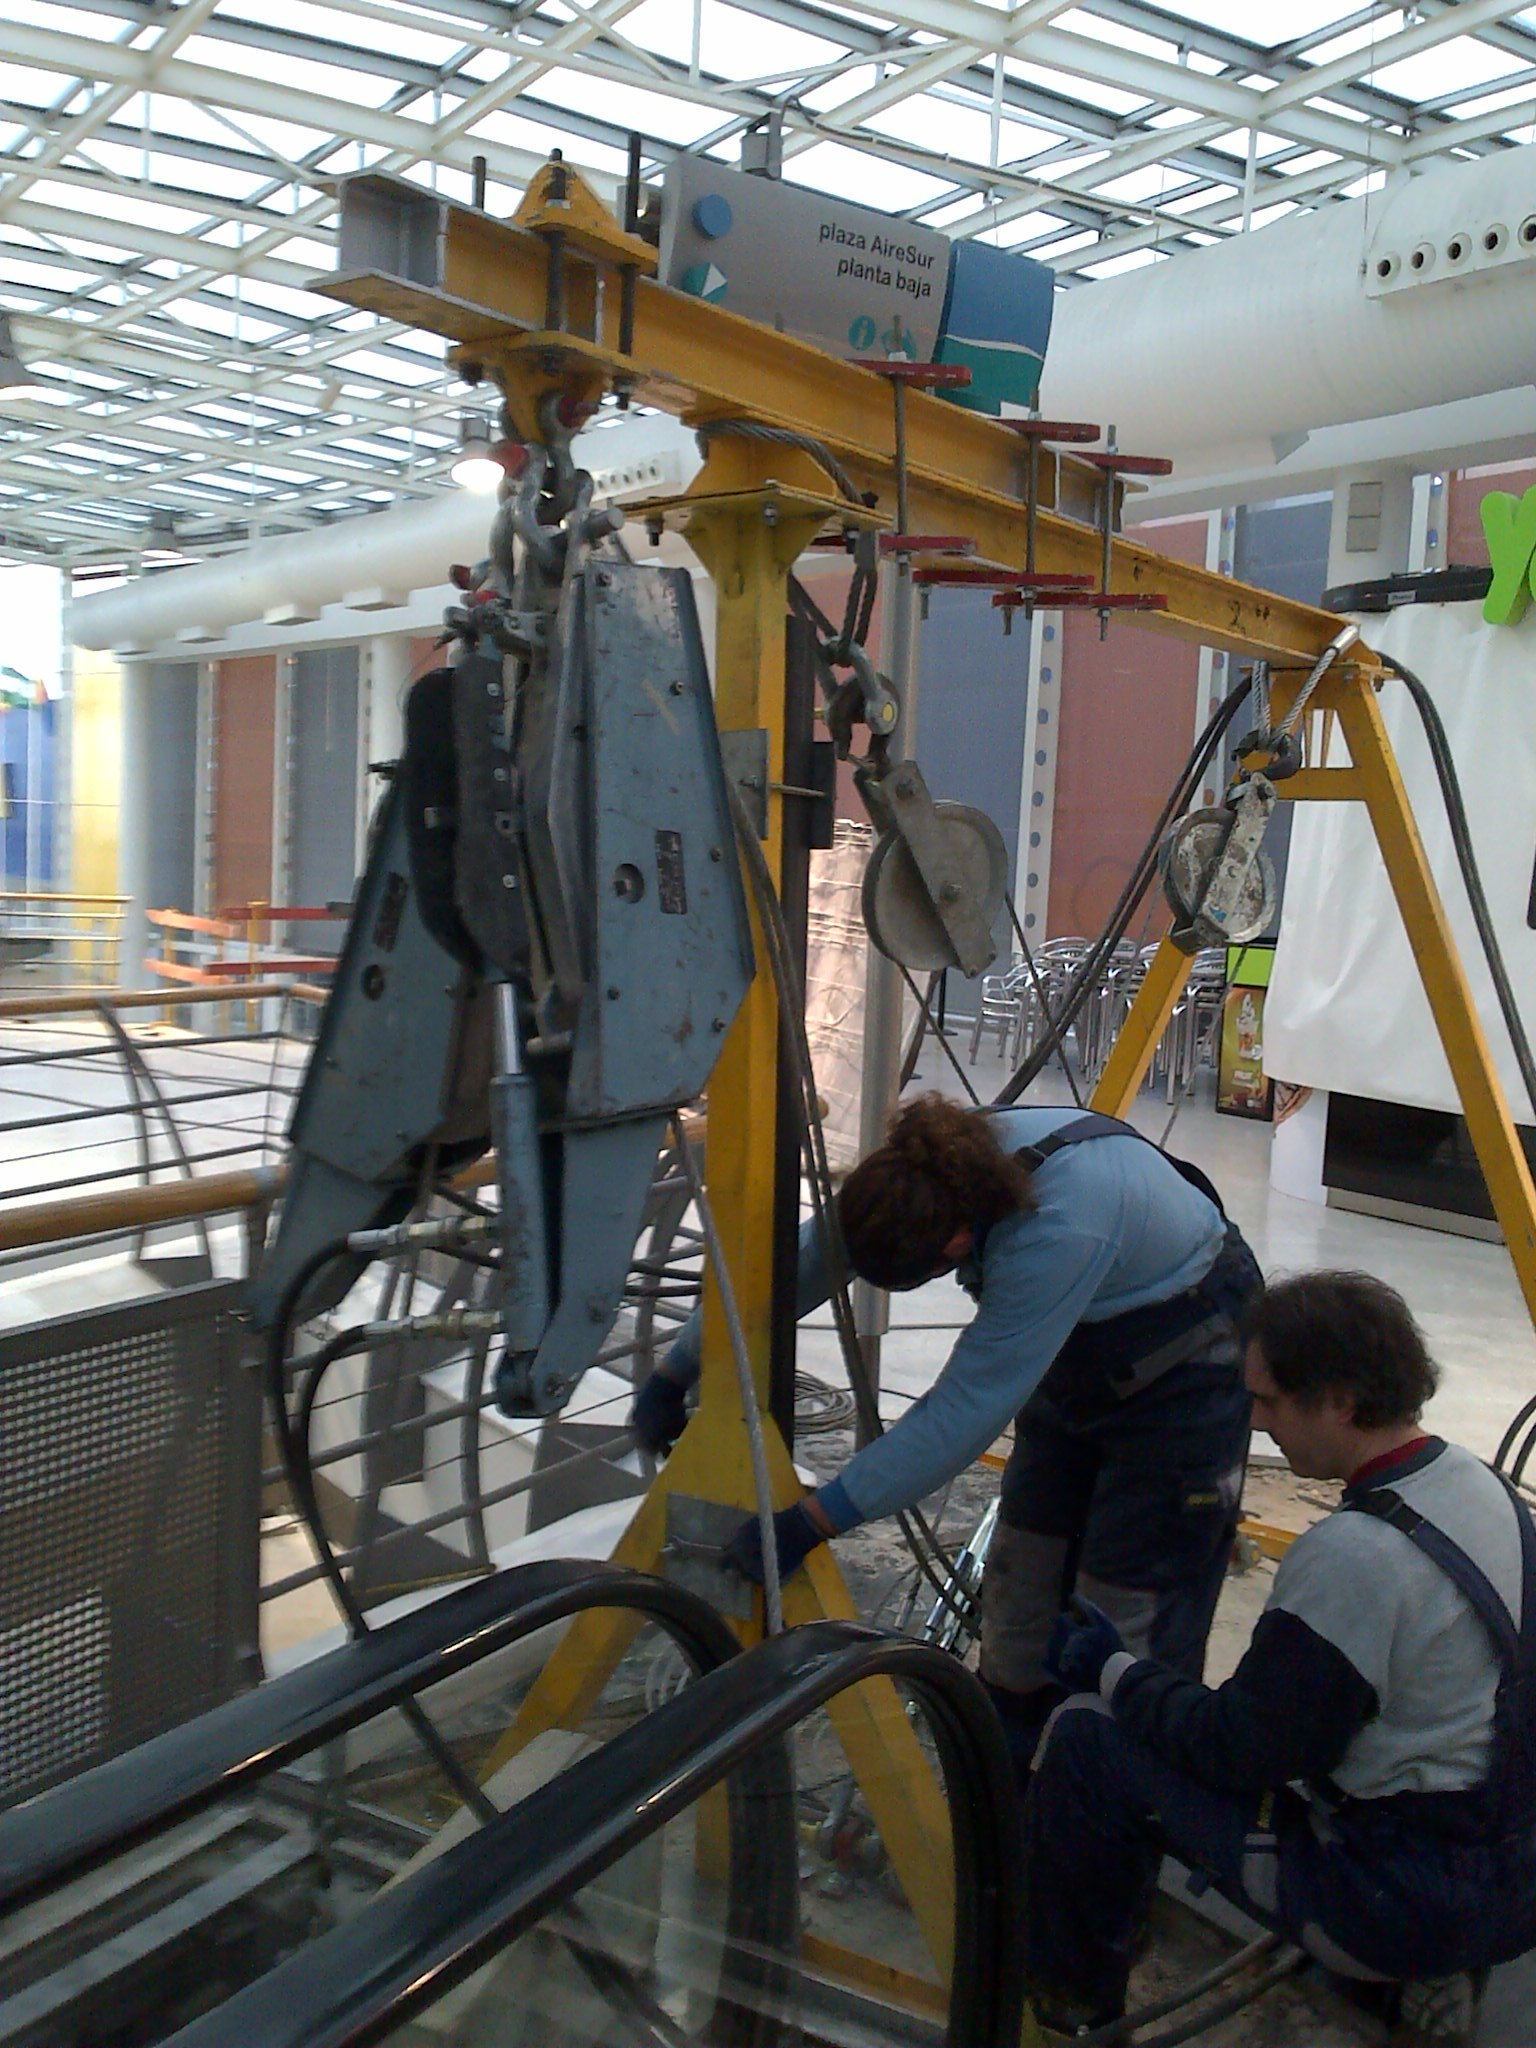 airesur_shopping_mall_kone_escalator_relocation_seville_1-jpg